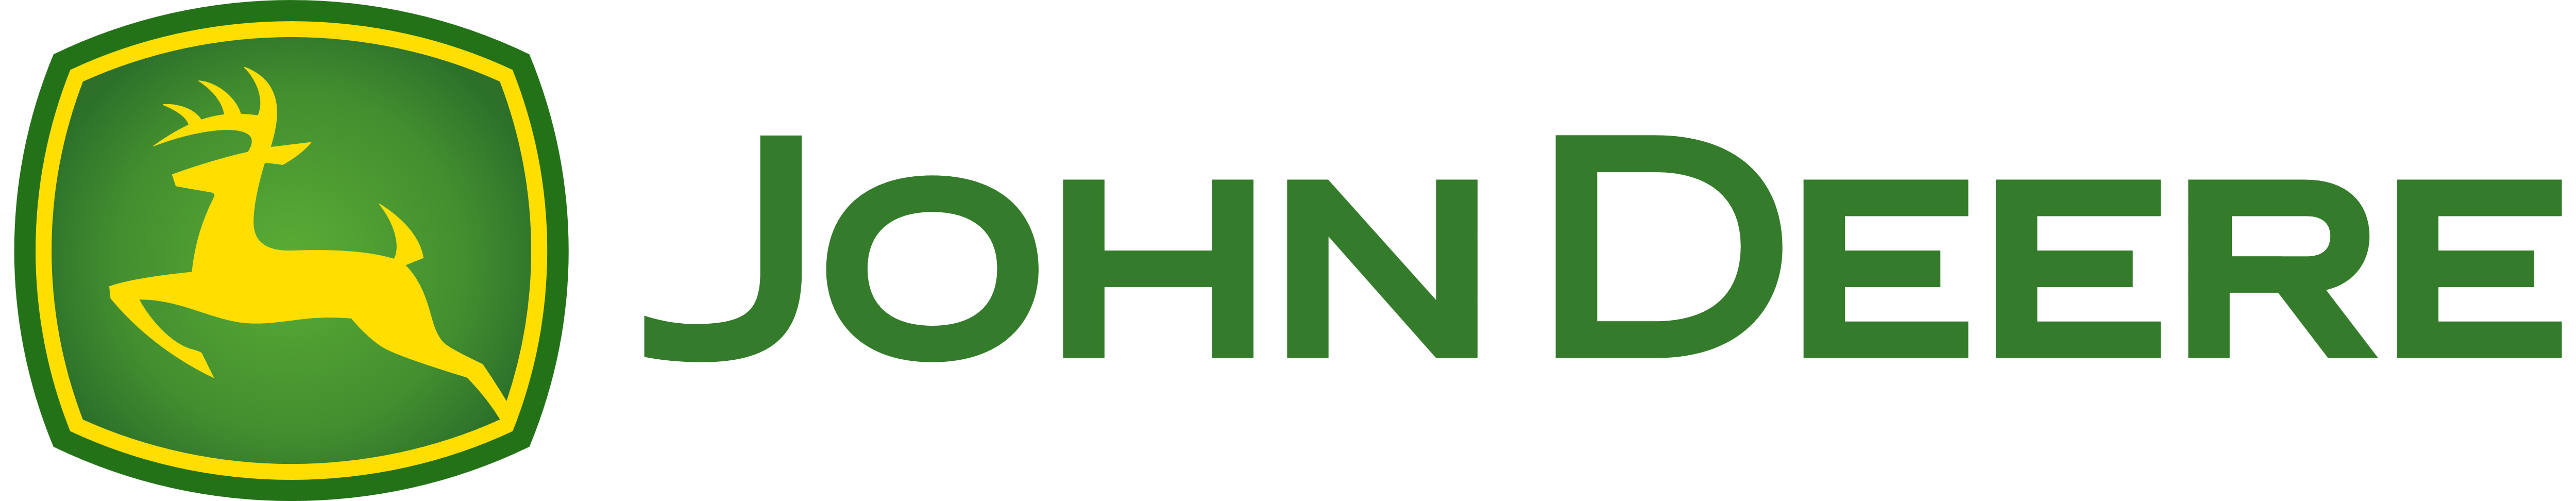 john deere logos download rh logos download com john deere logistics contact john deere logos for sale